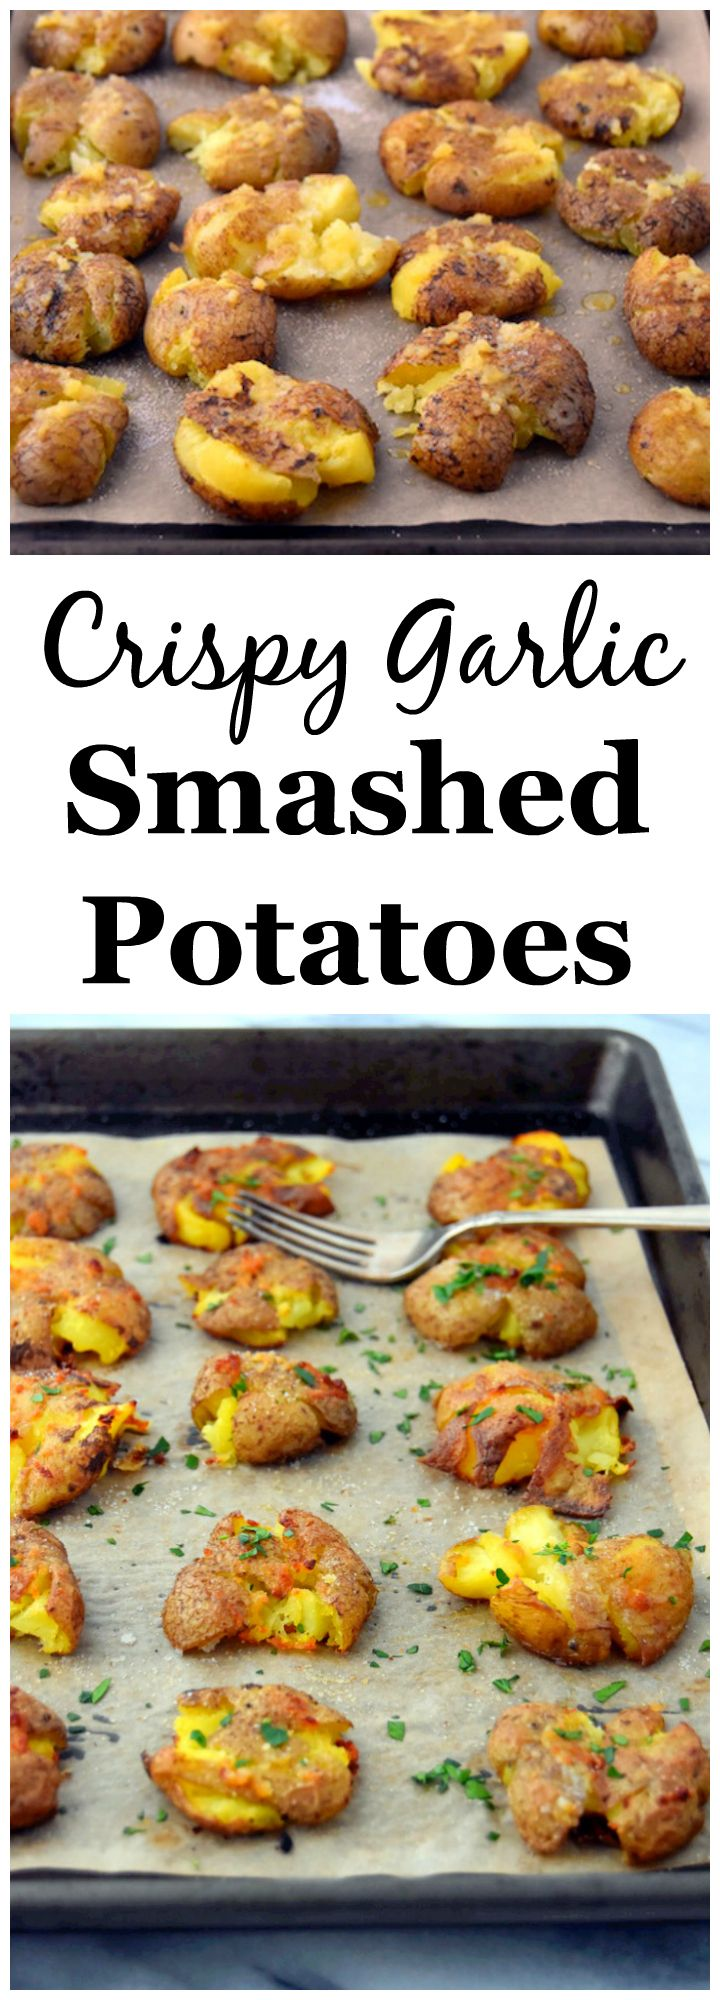 Best 25 yellow potatoes ideas on pinterest roasted ranch crispy garlic smashed potatoes garlic smashed potatoesroasted ccuart Images